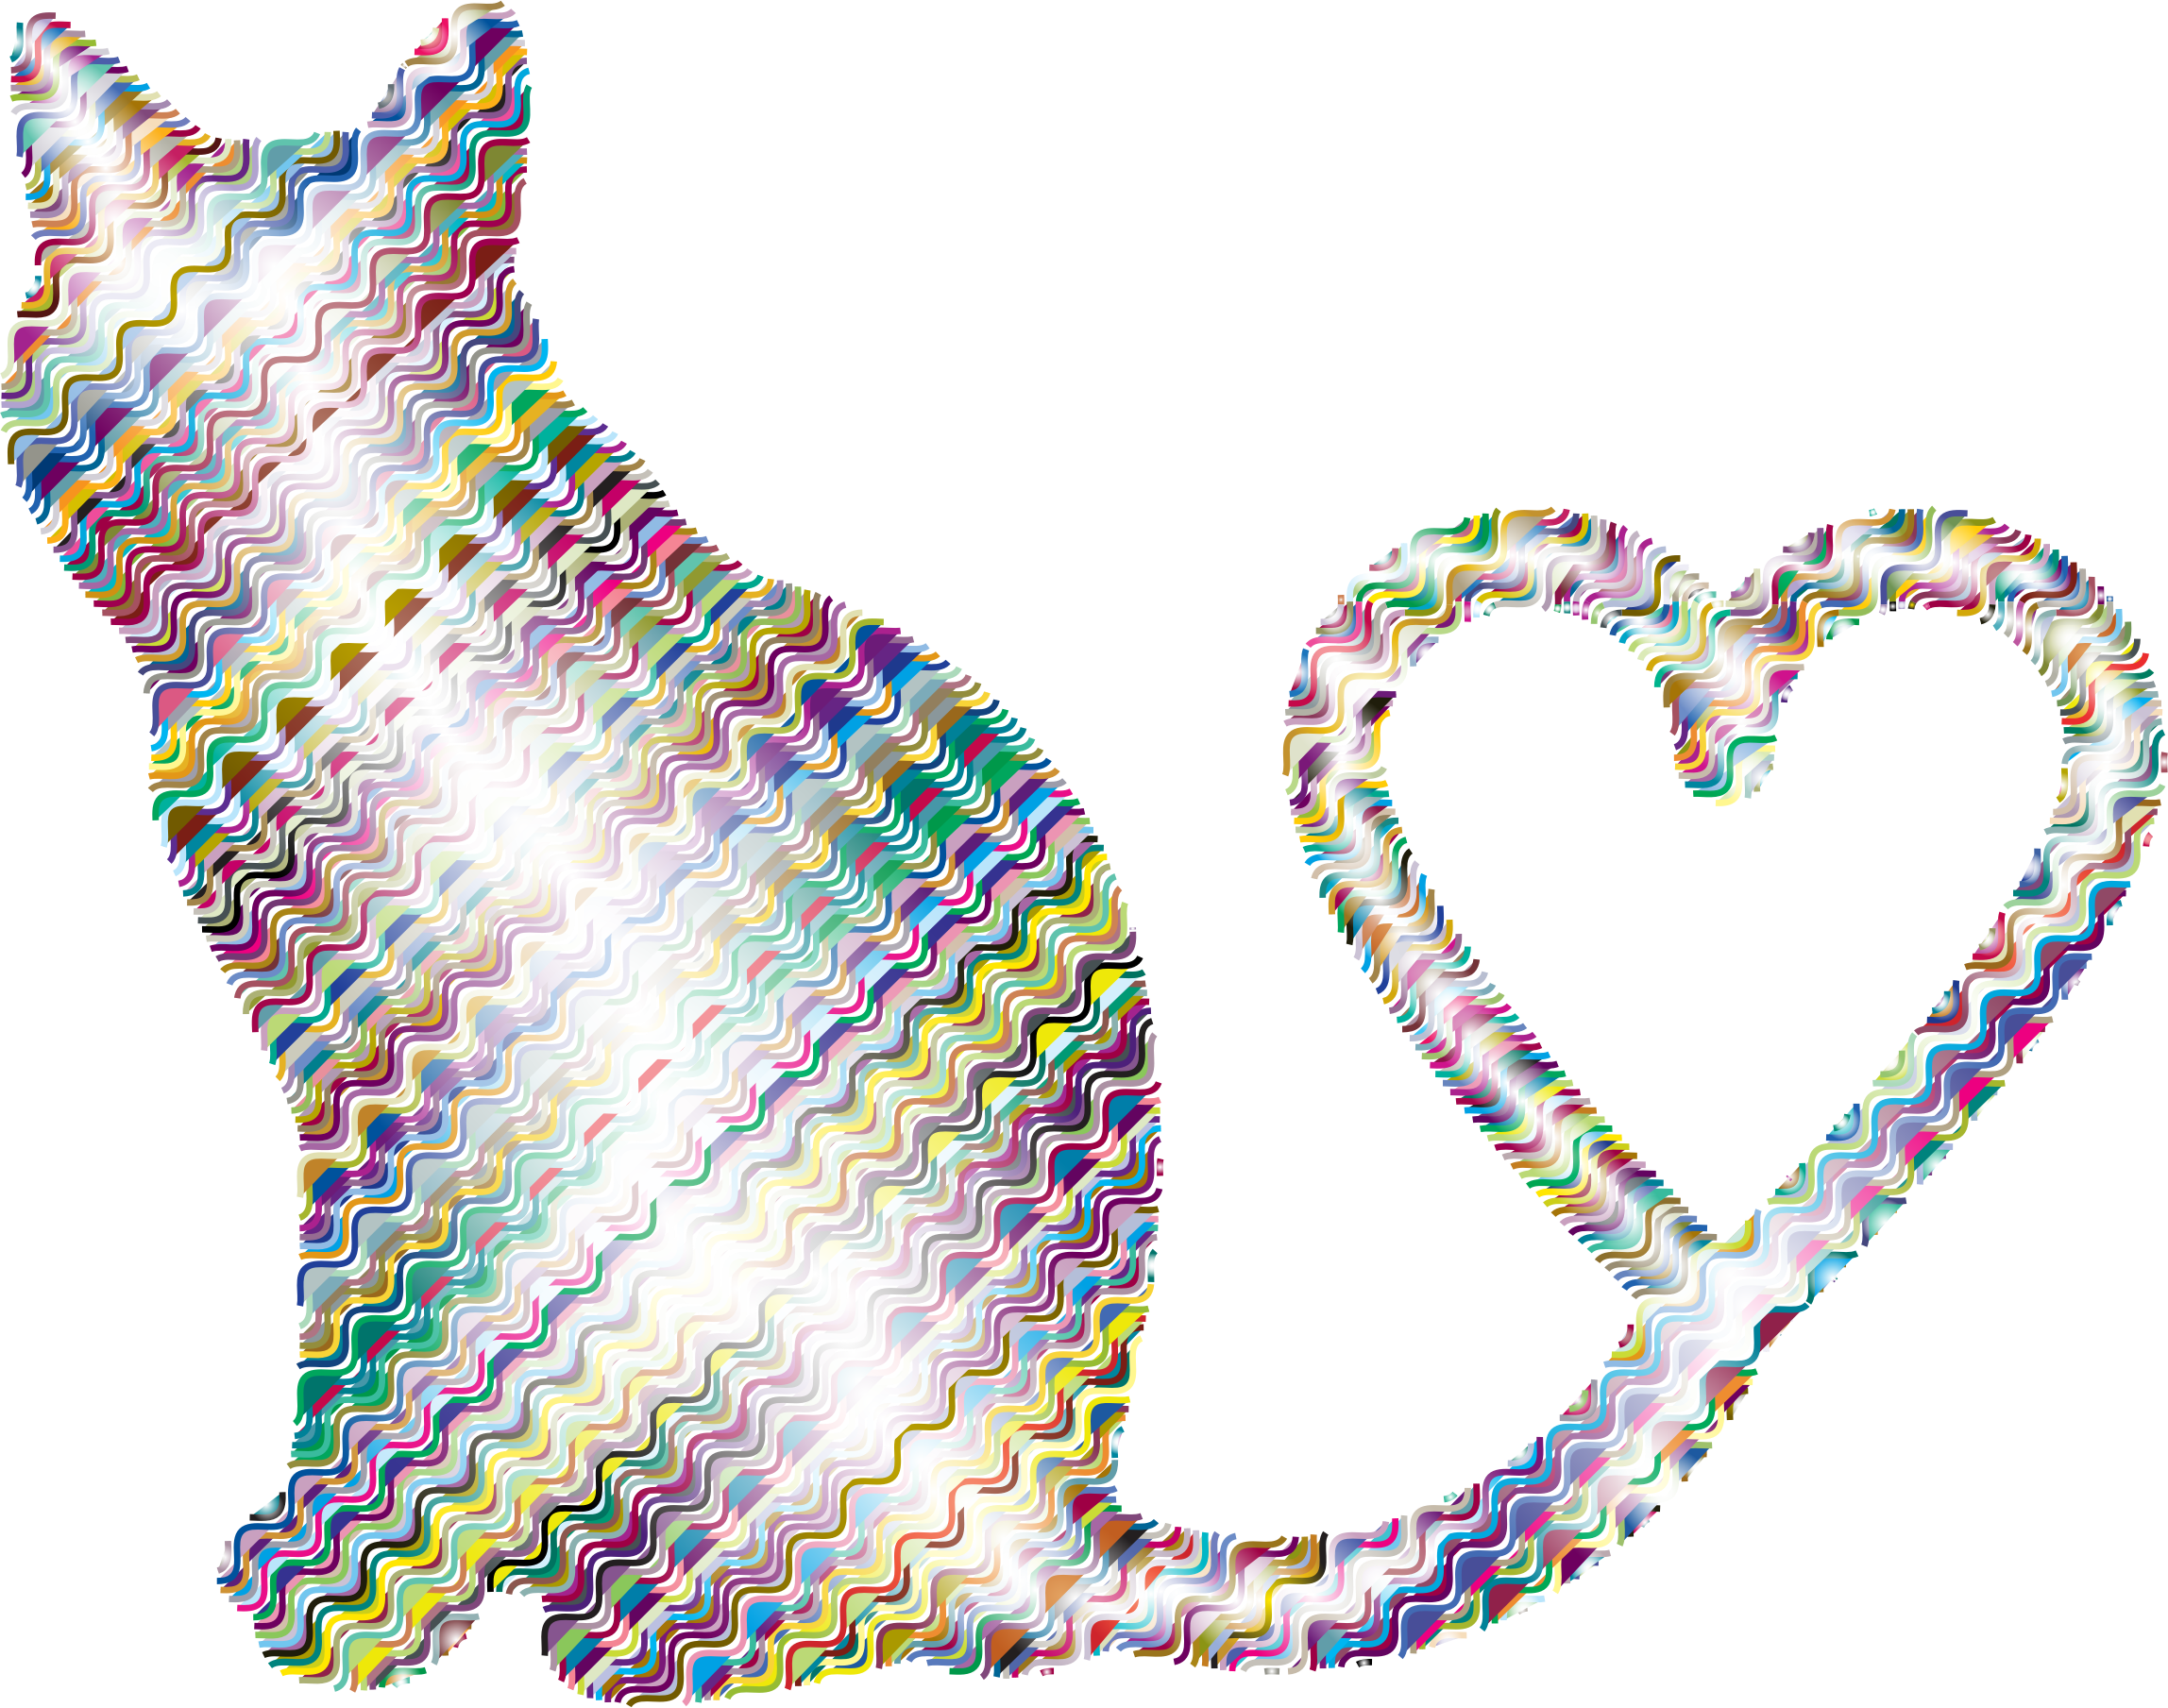 Cat heart tail clipart jpg library download Clipart - Cat 2 Silhouette Heart Tail Waves 2 jpg library download